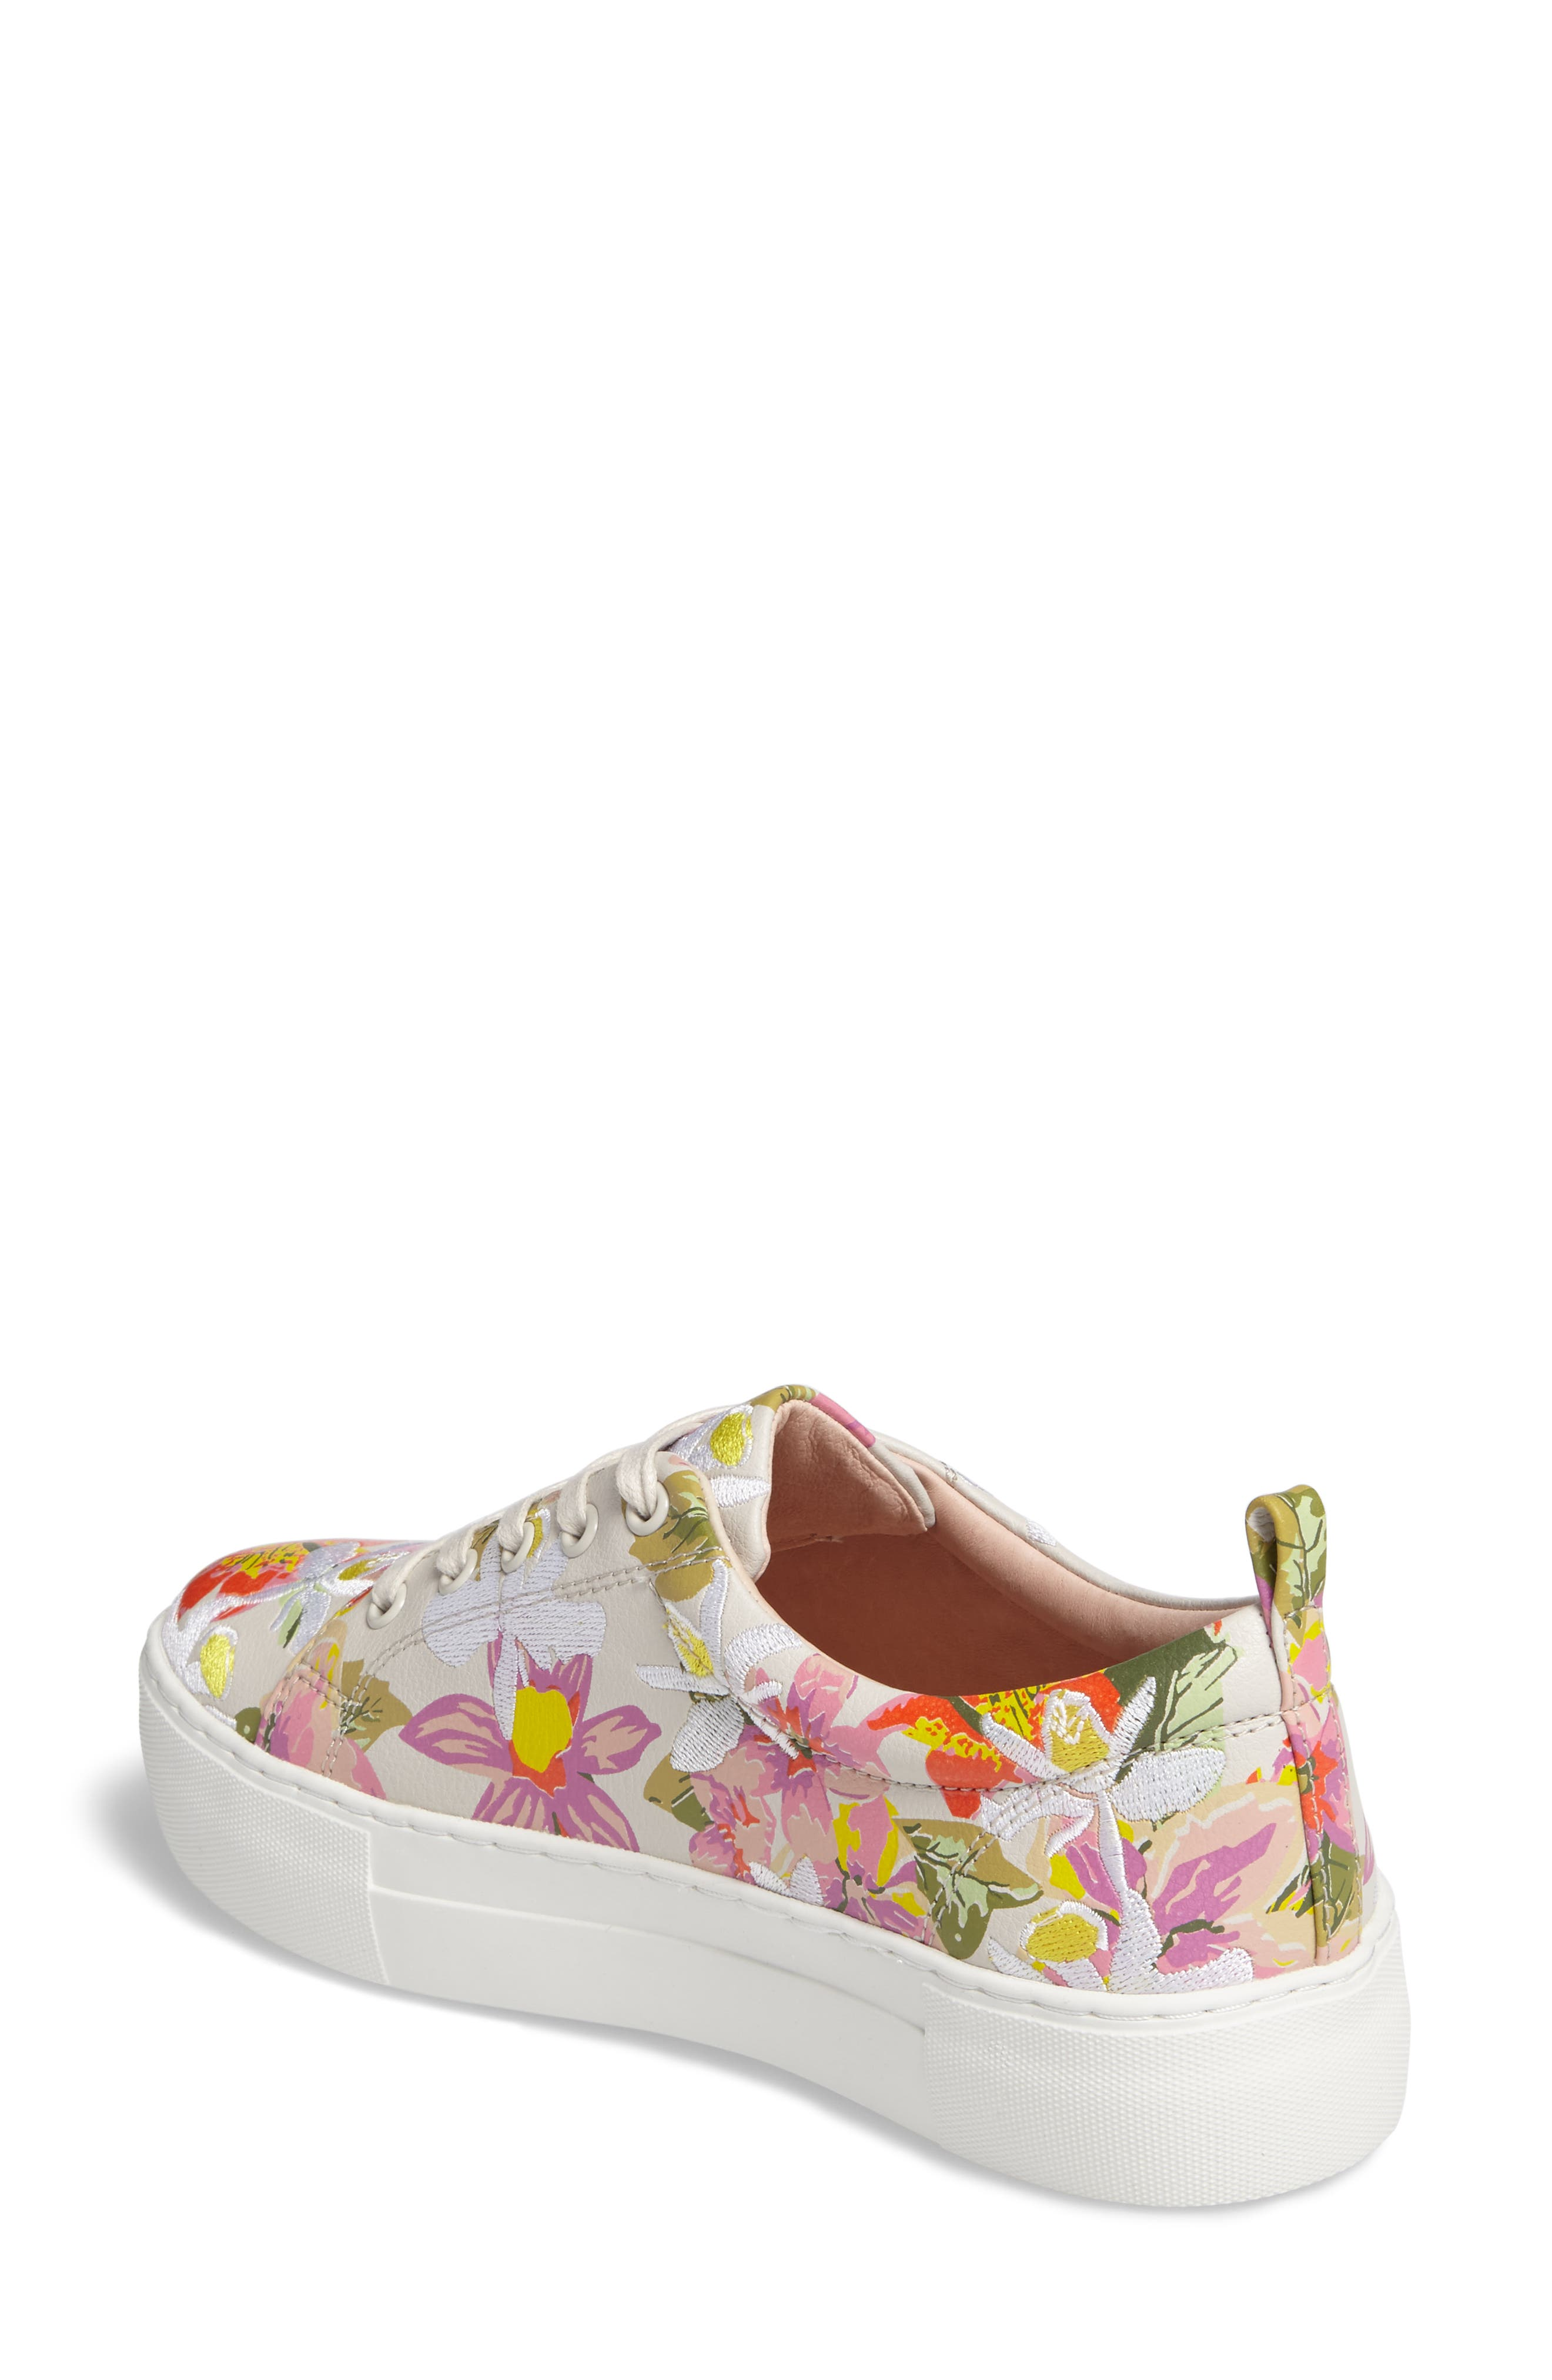 Appy Embroidered Platform Sneaker,                             Alternate thumbnail 2, color,